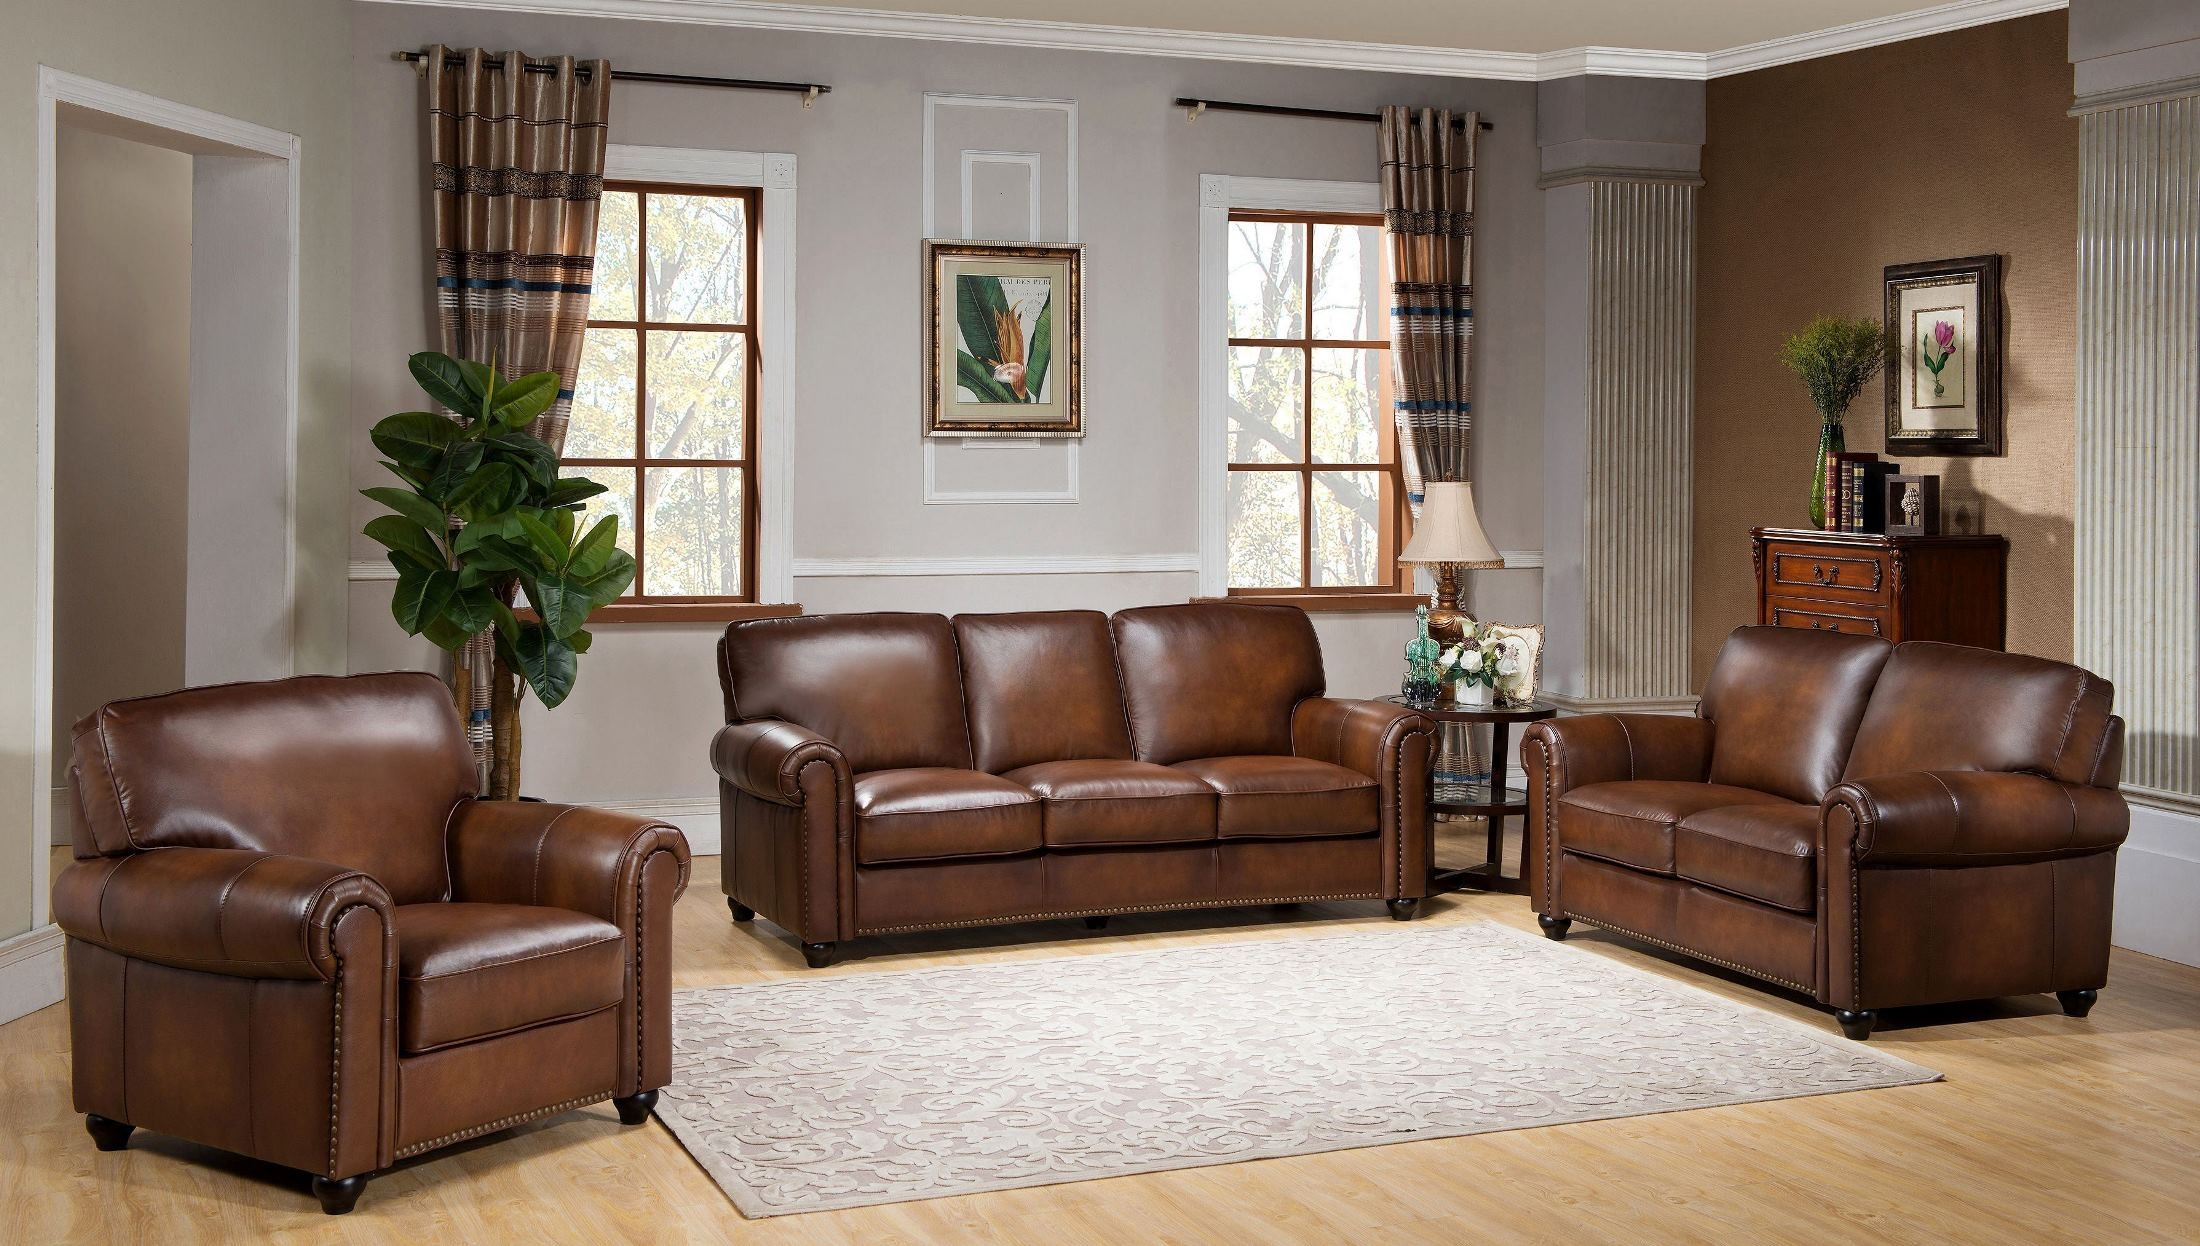 Leather Living Royale Camel Brown Leather Living Room Set C9755s2839ls